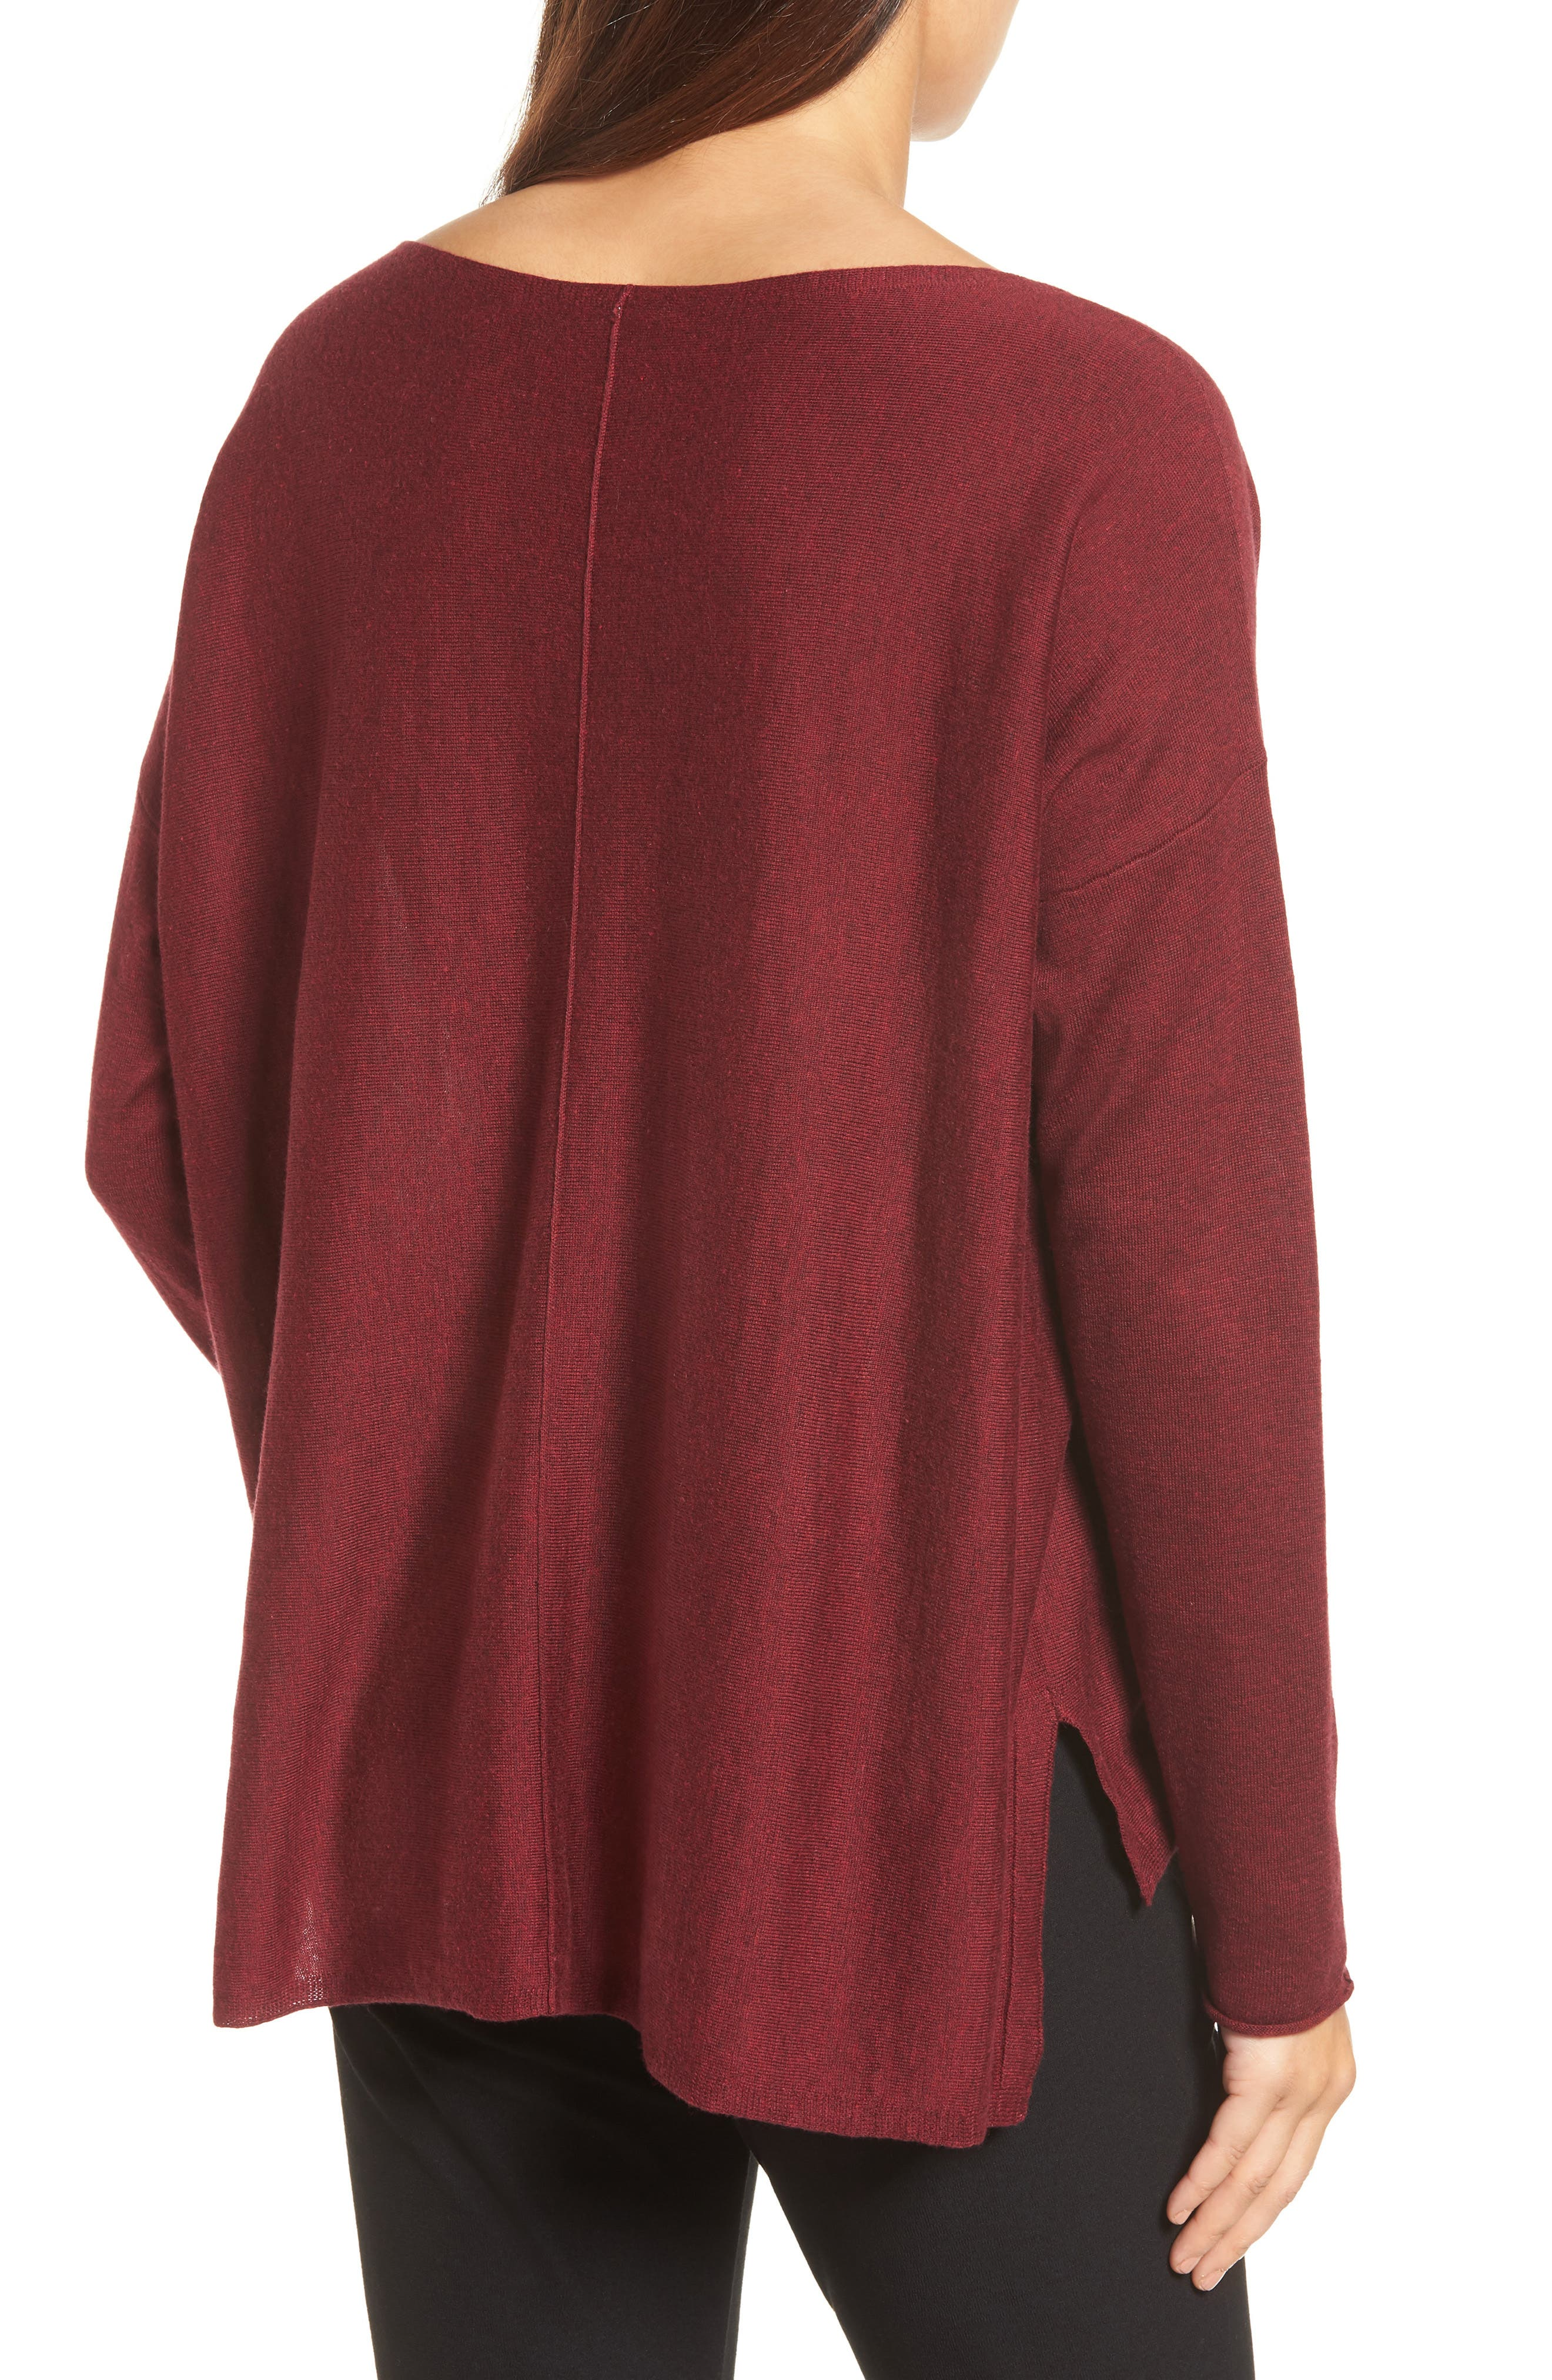 Tencel<sup>®</sup> Lyocell Blend High/Low Sweater,                             Alternate thumbnail 12, color,